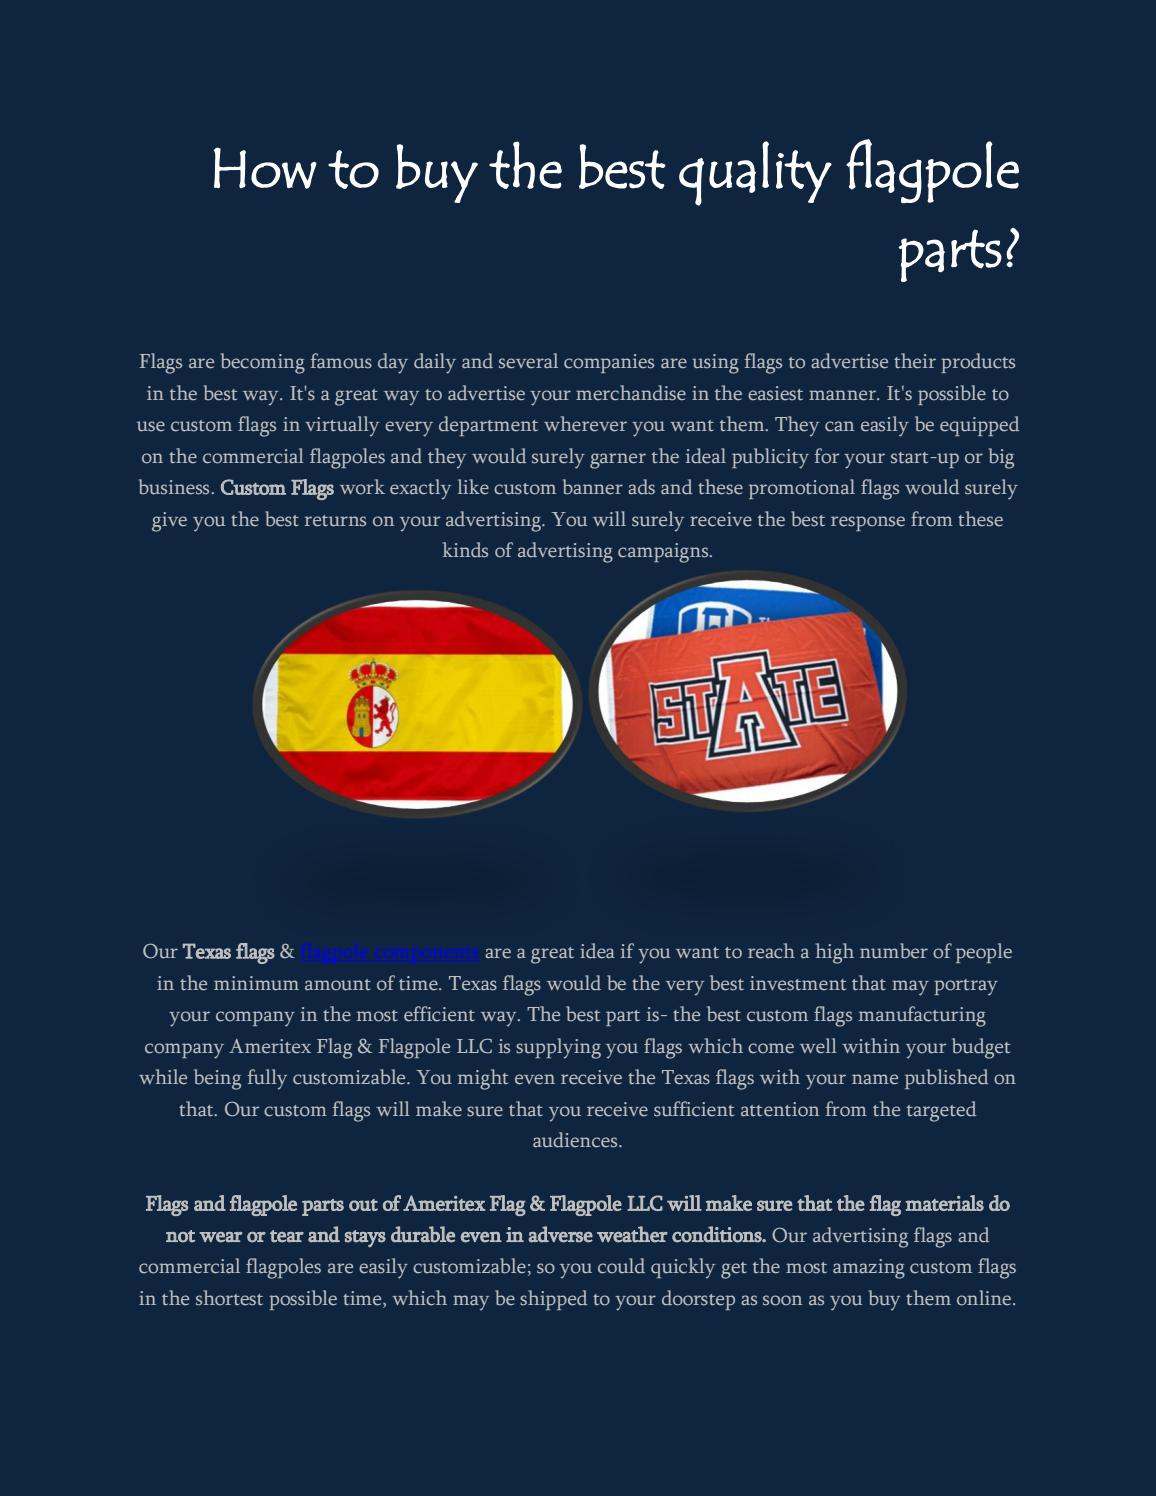 How to buy the best quality flagpole parts? by David Kelven